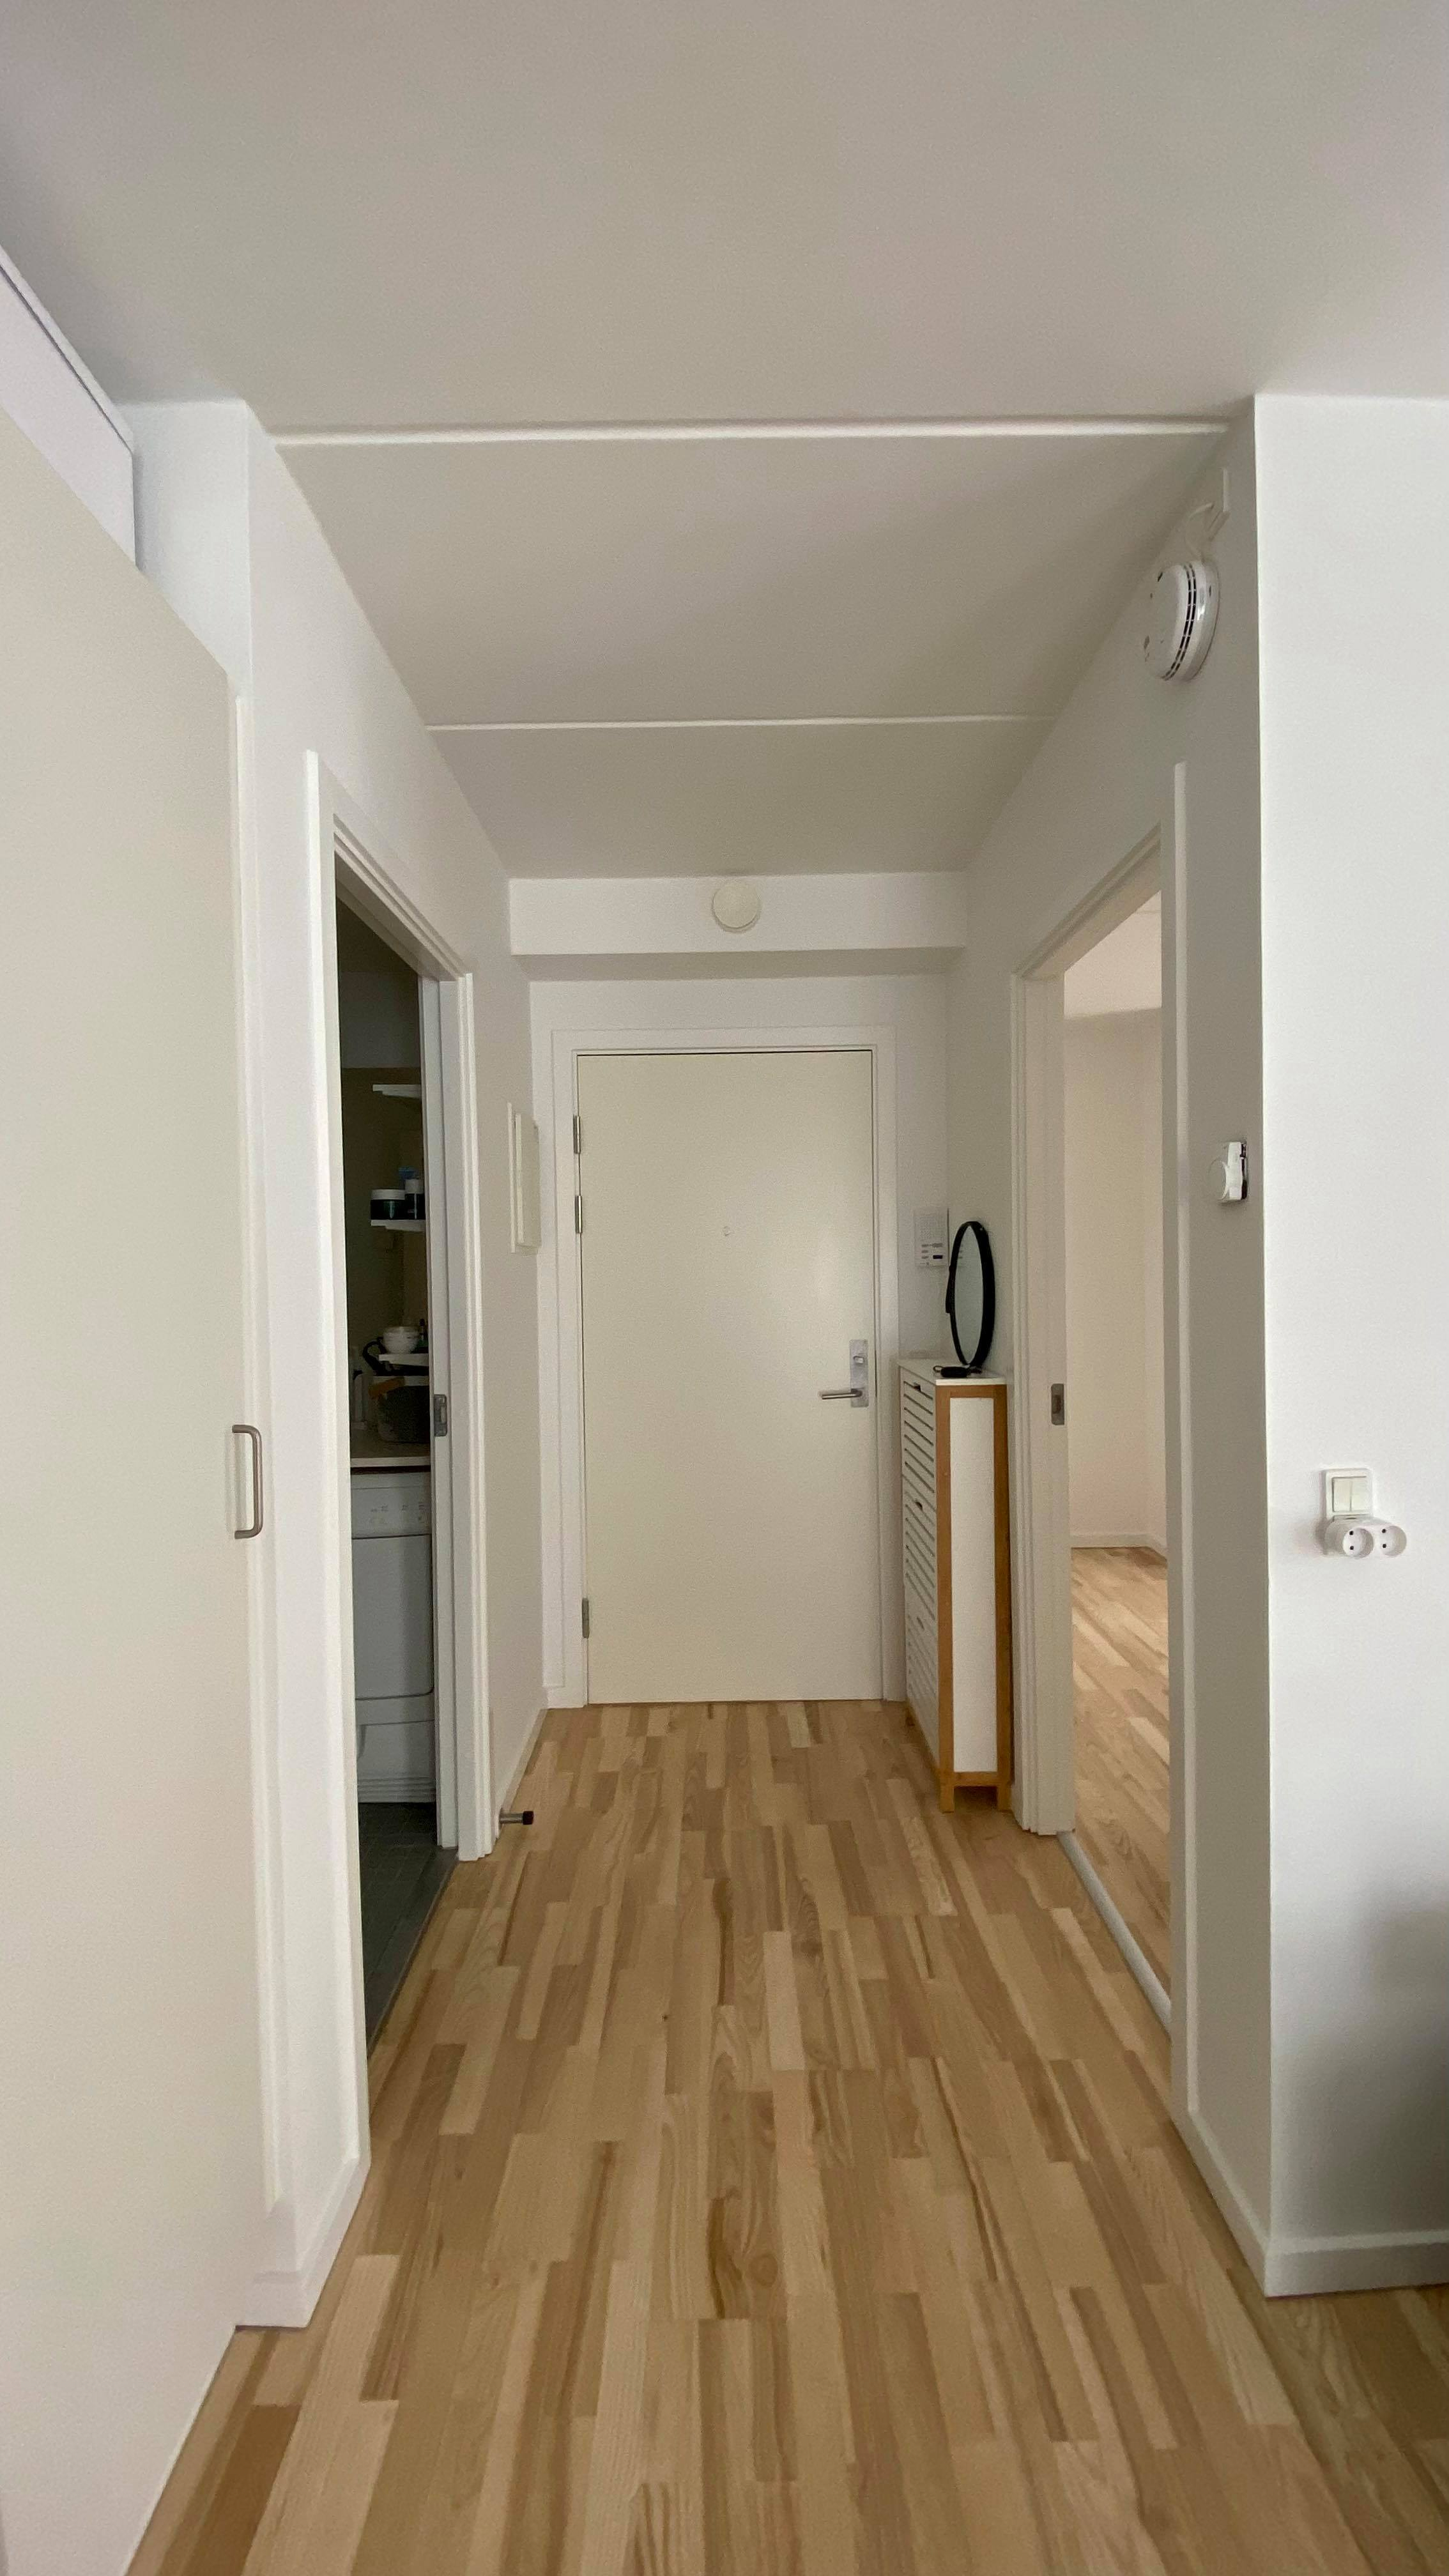 Room available in Valby Maskinfabrik